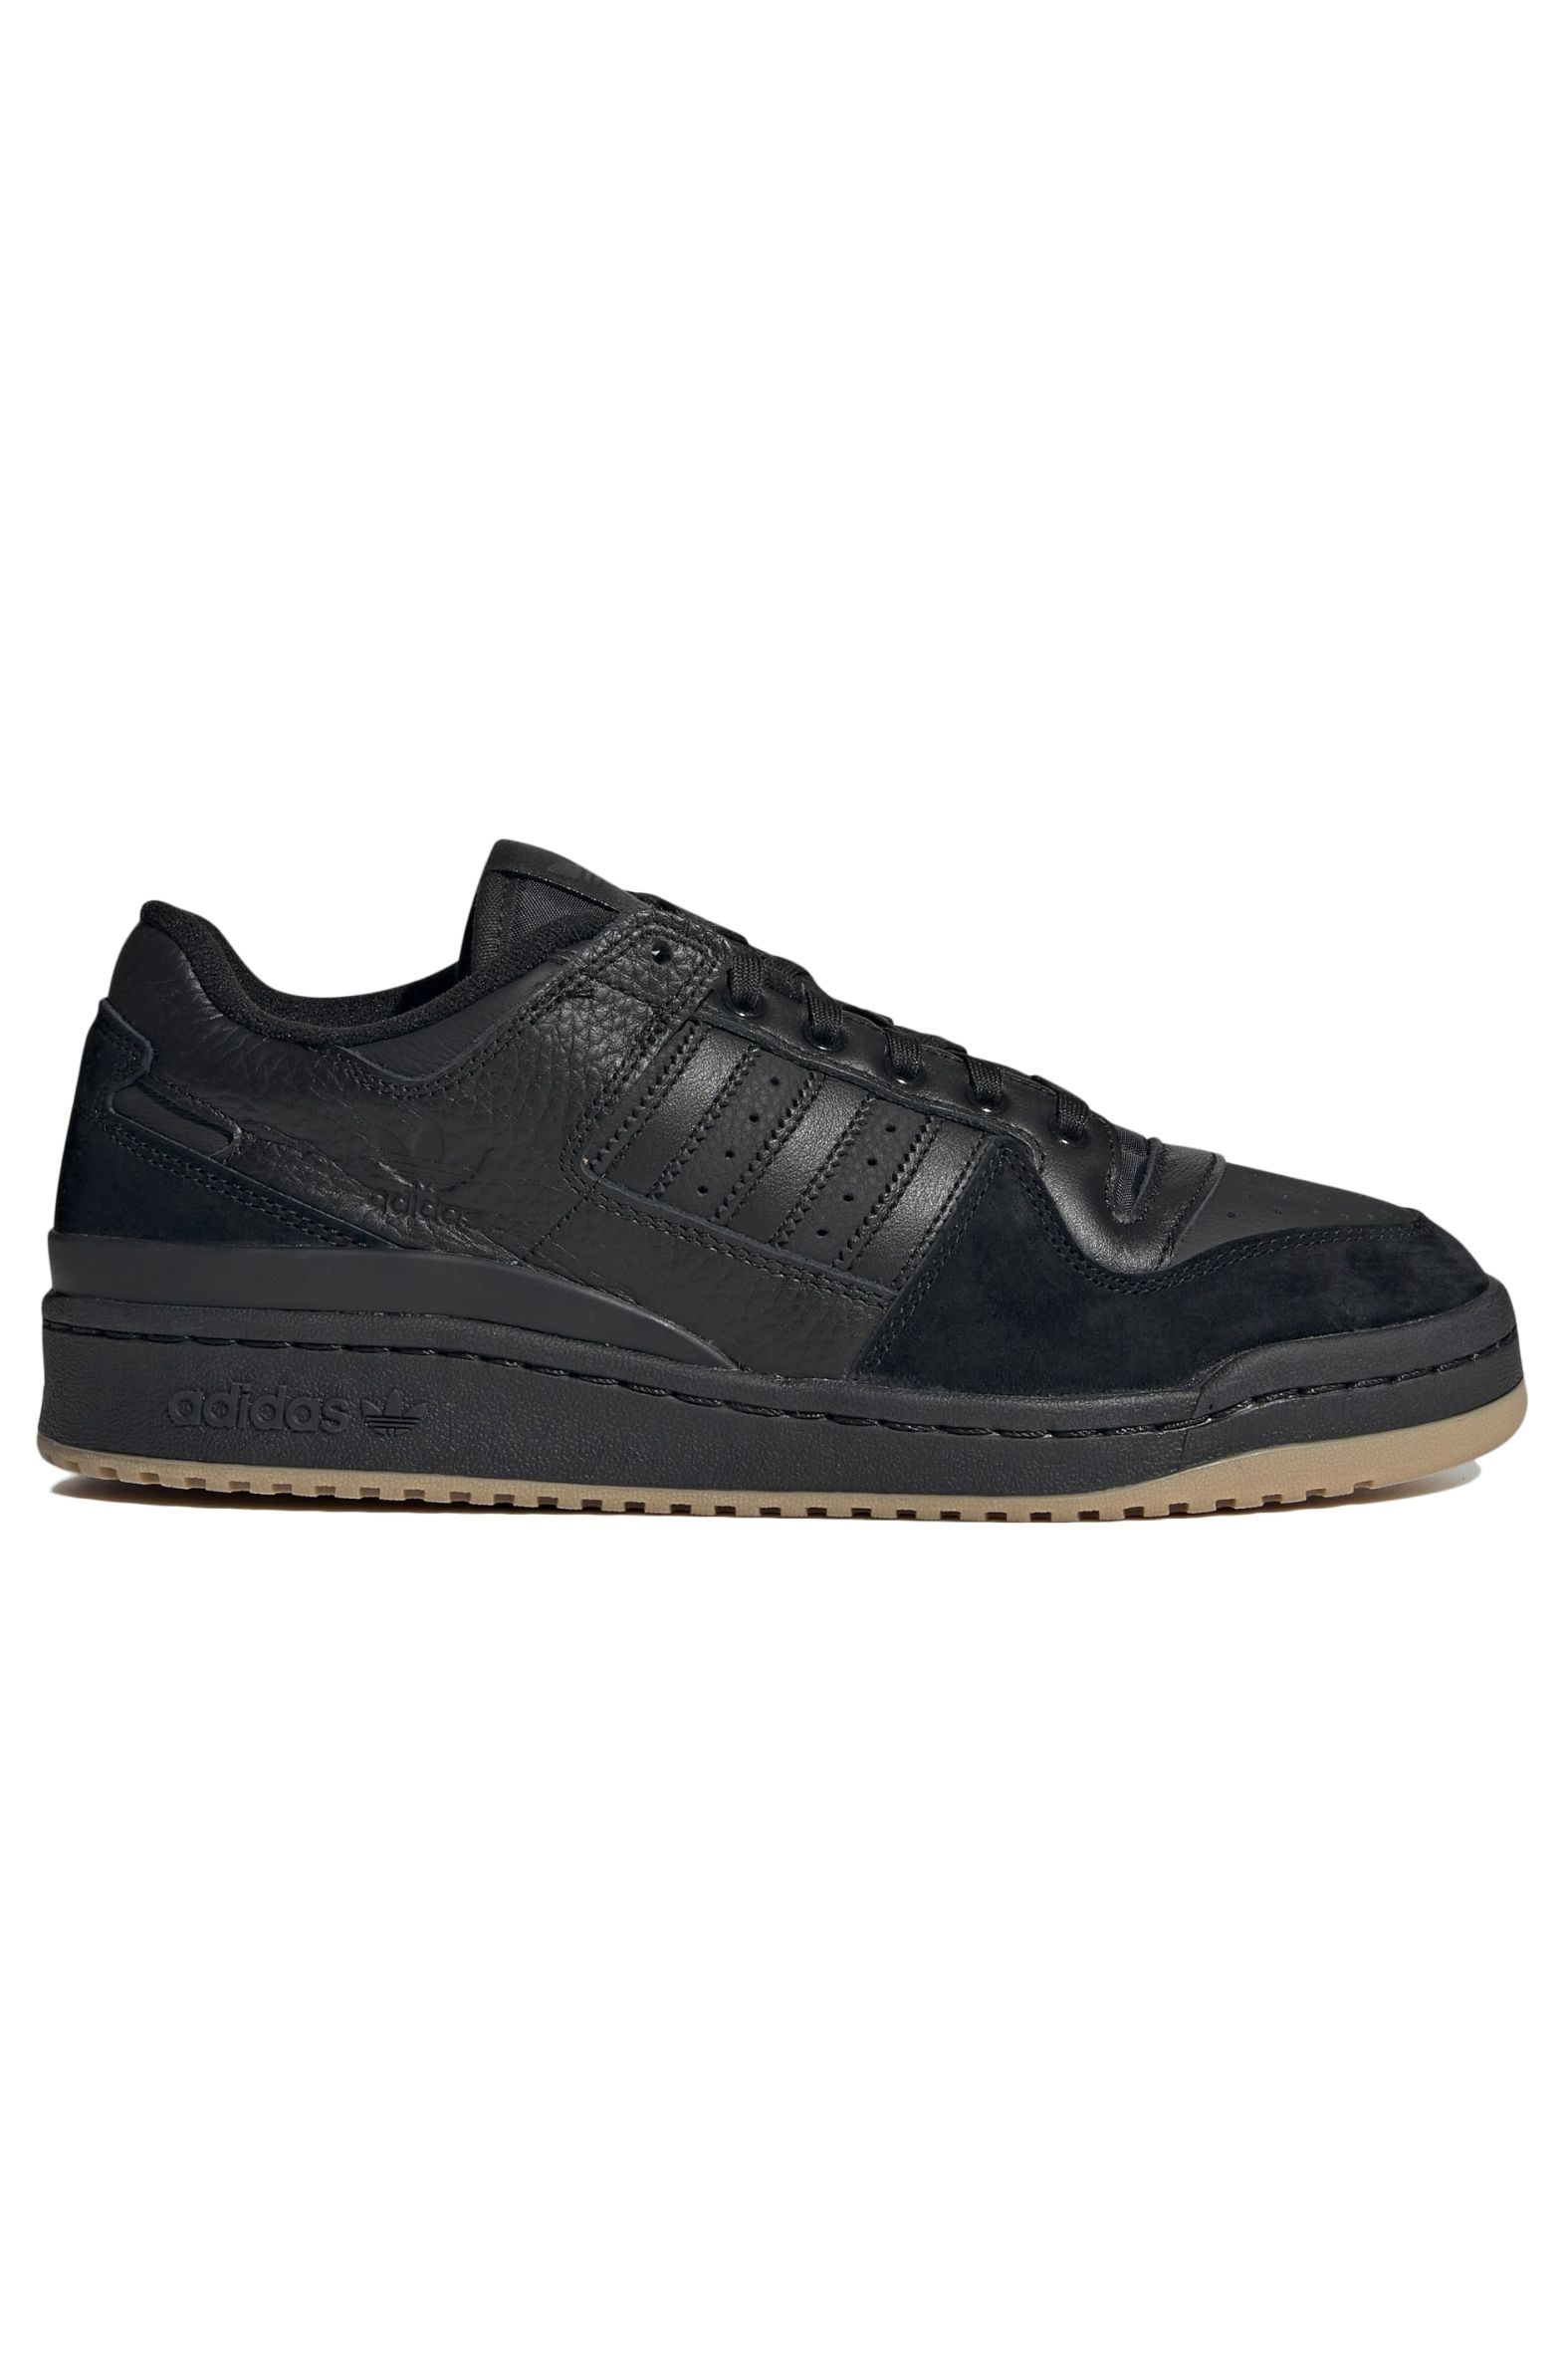 Tenis Adidas FORUM 84 LOW ADV Core Black/Core Black/Vivid Red